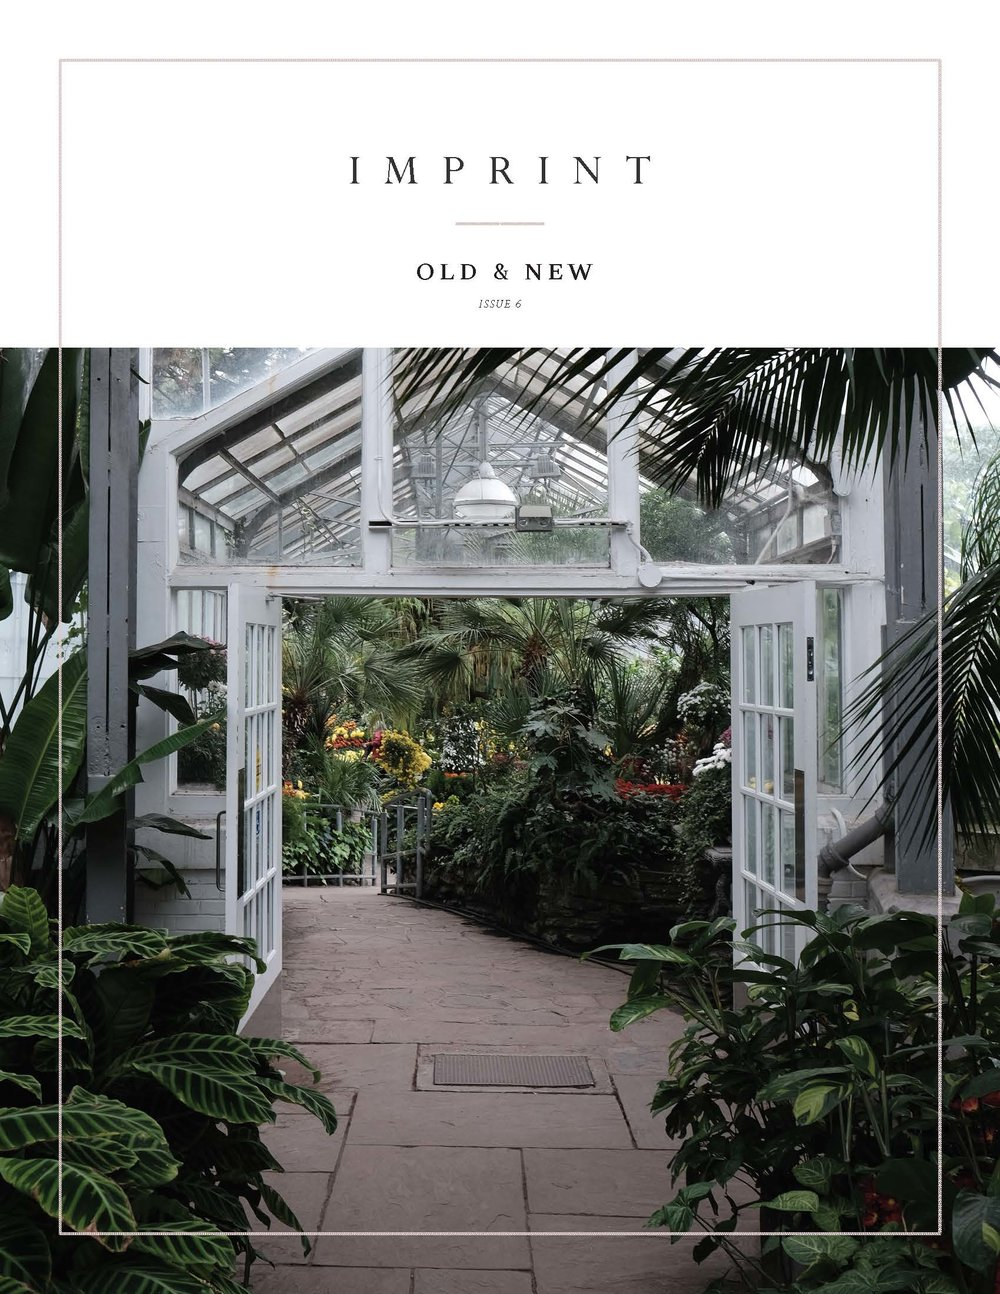 IMPRINT 06_Old and New_Cover.jpg